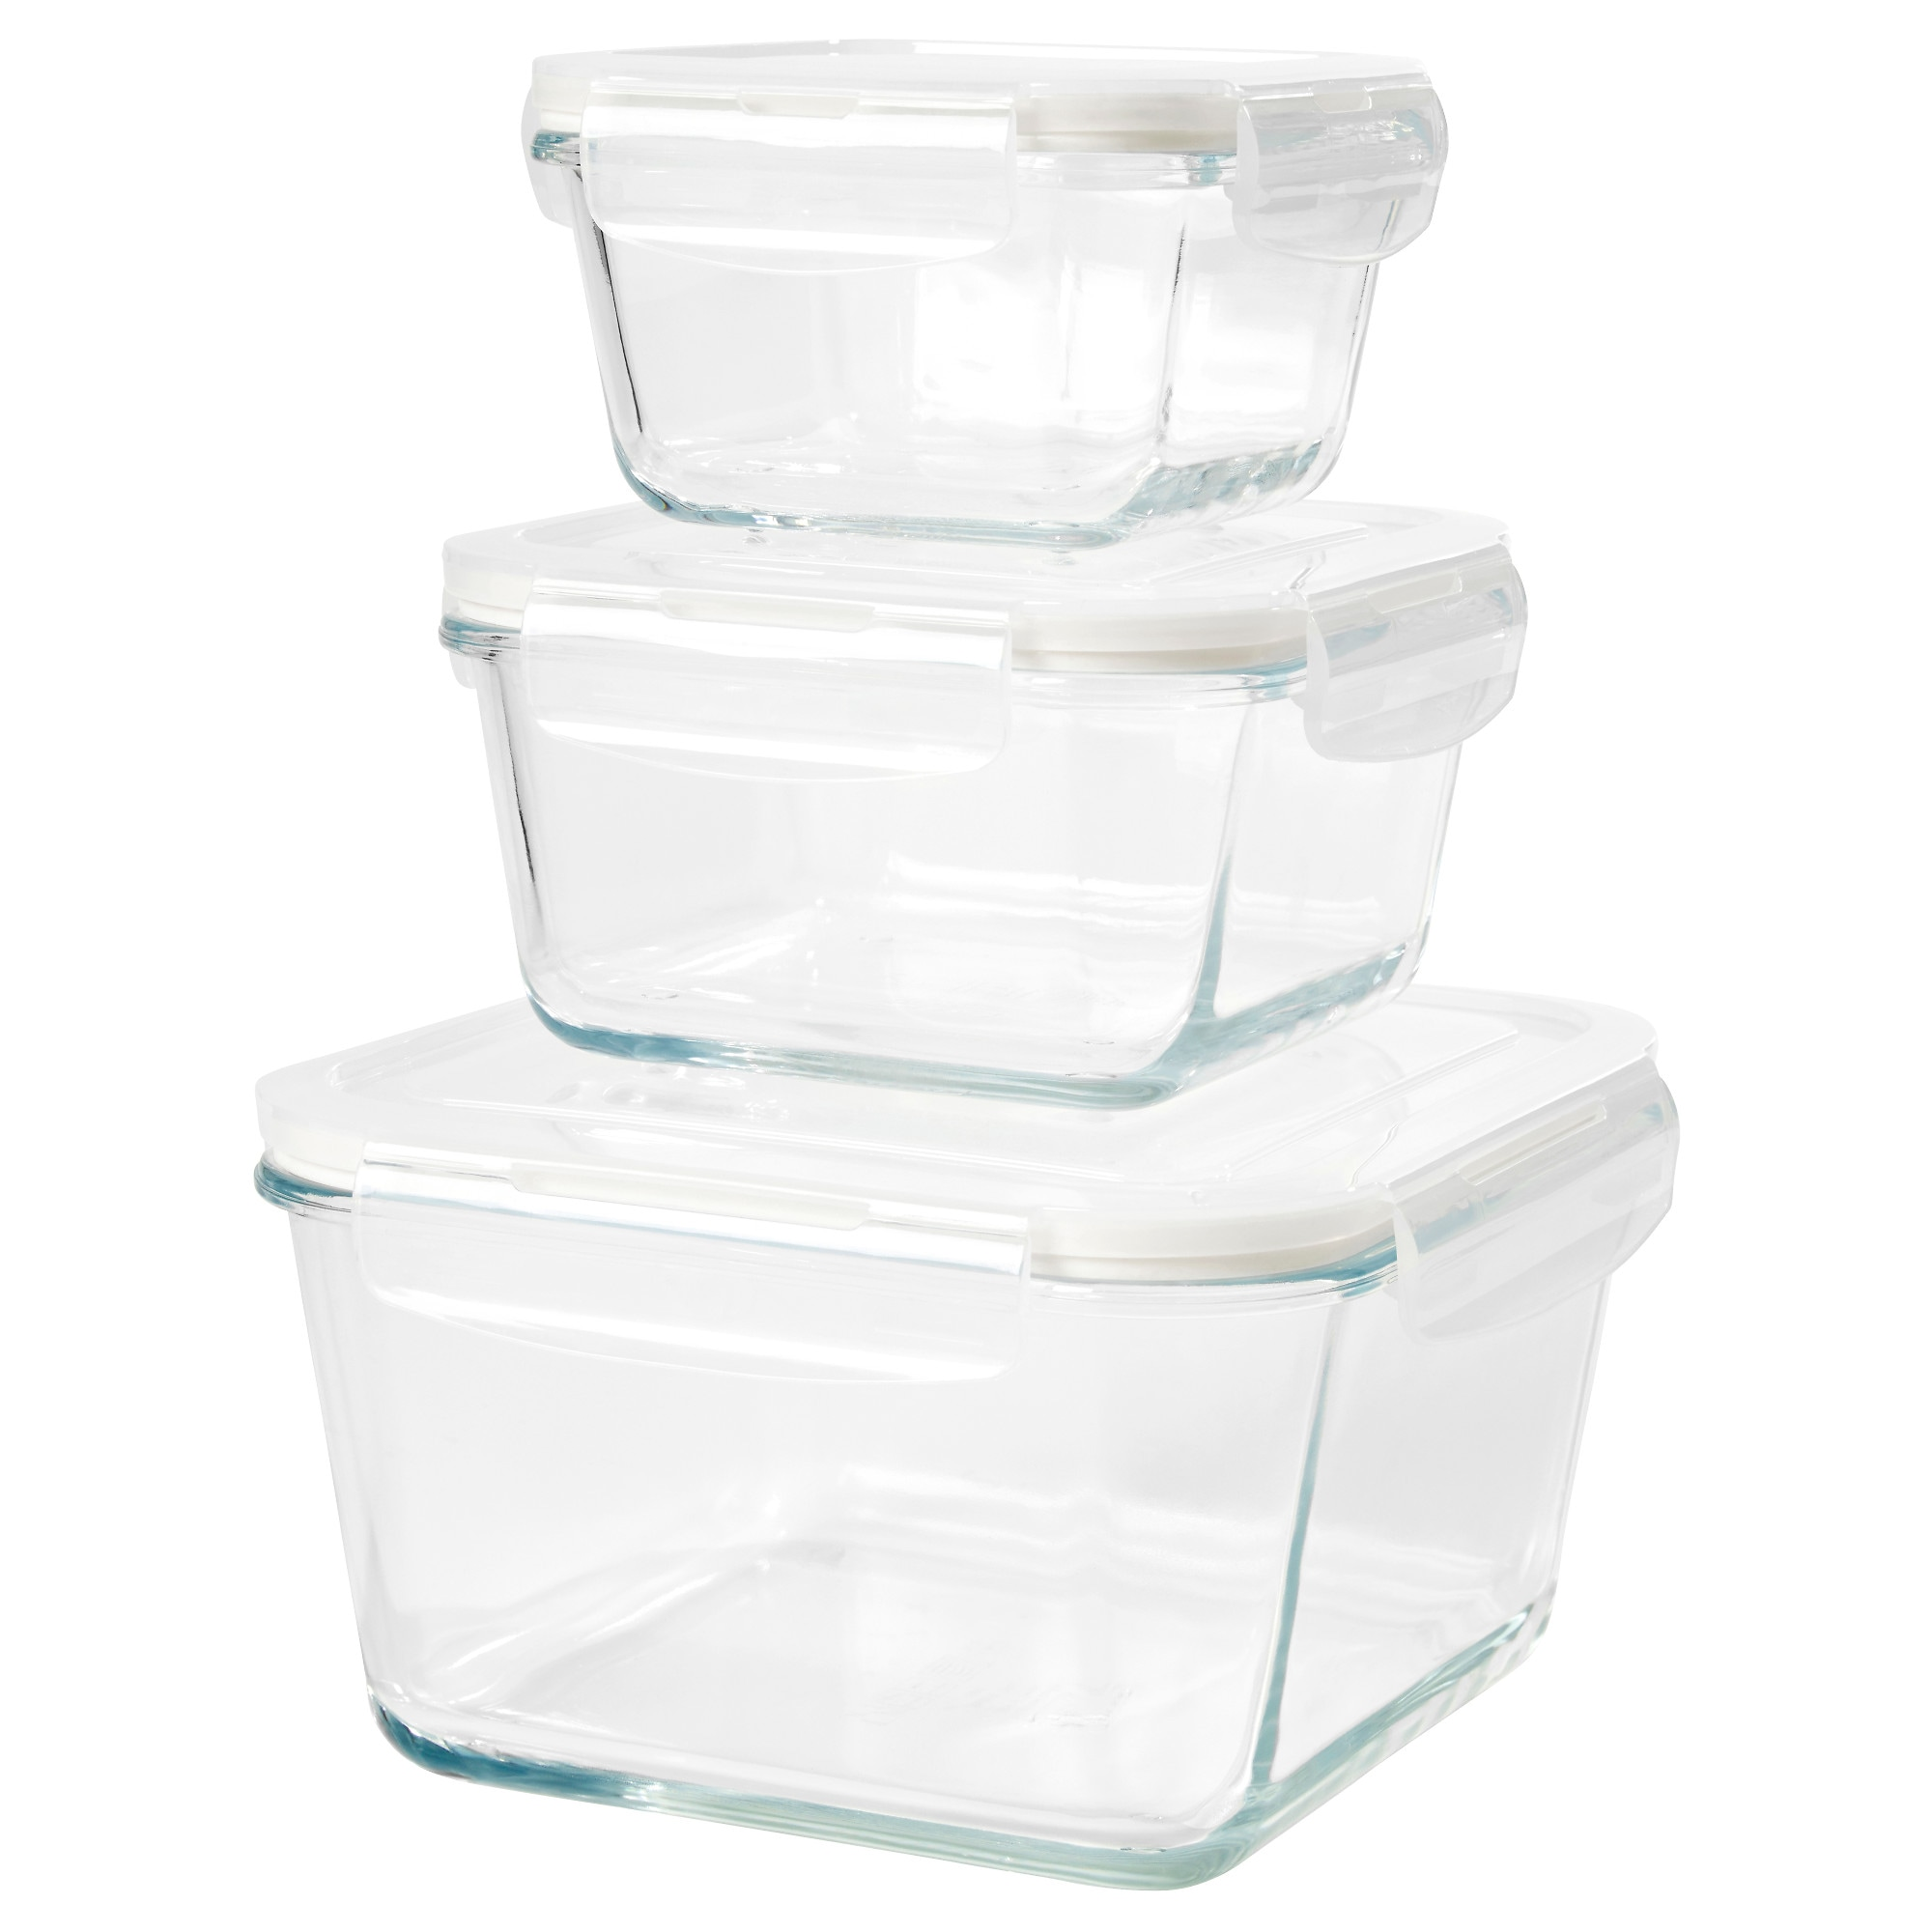 FRTROLIG food container, set of 3, clear glass